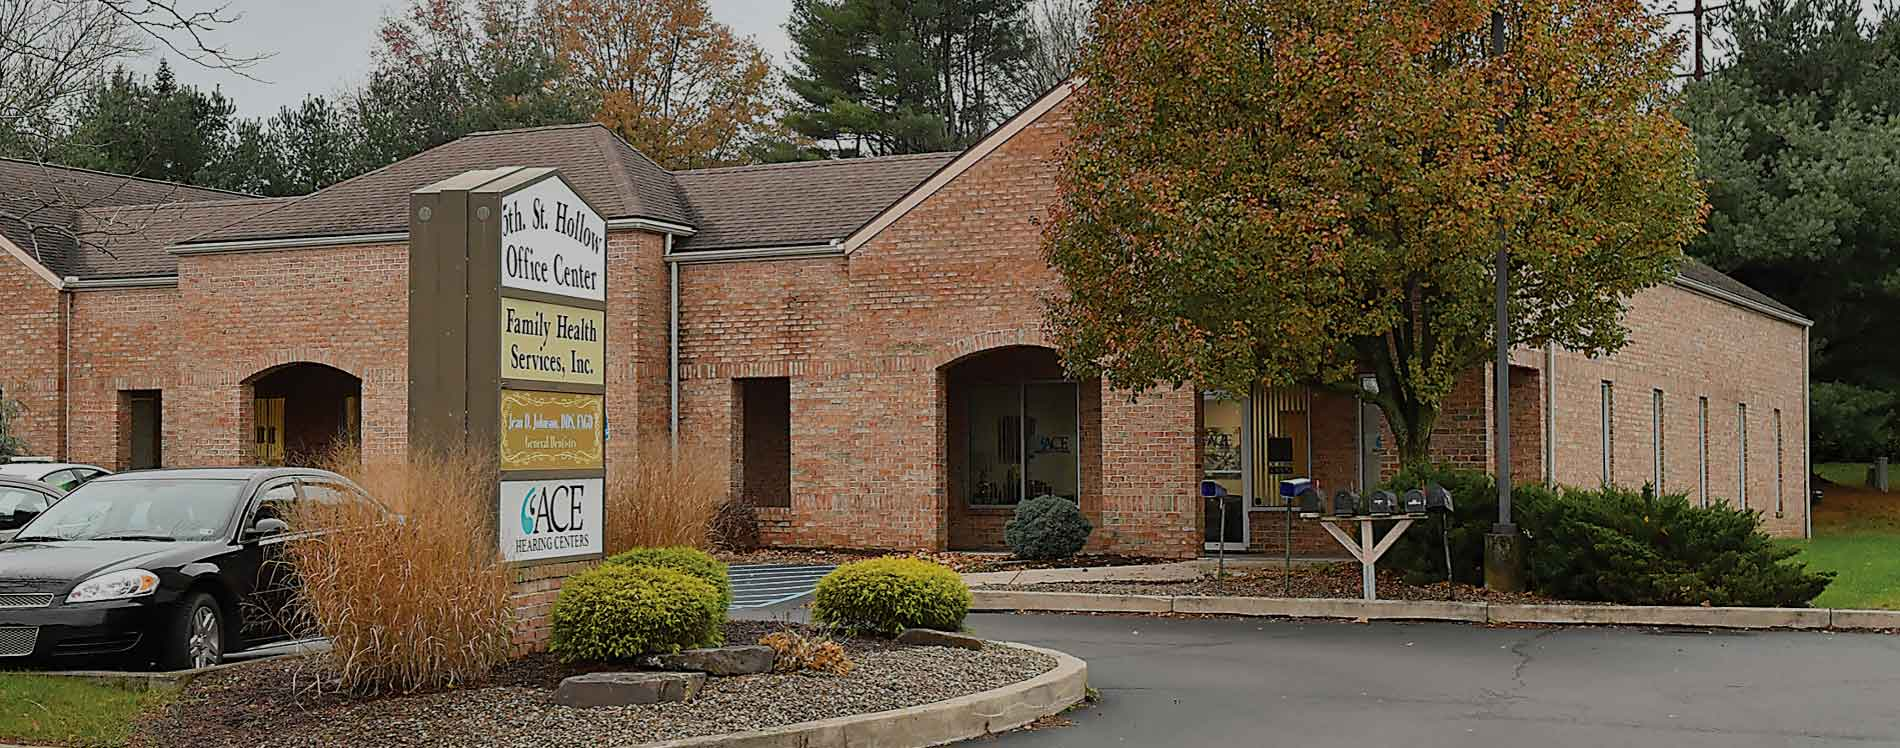 Ace Hearing Centers, Bloomsburg, PA